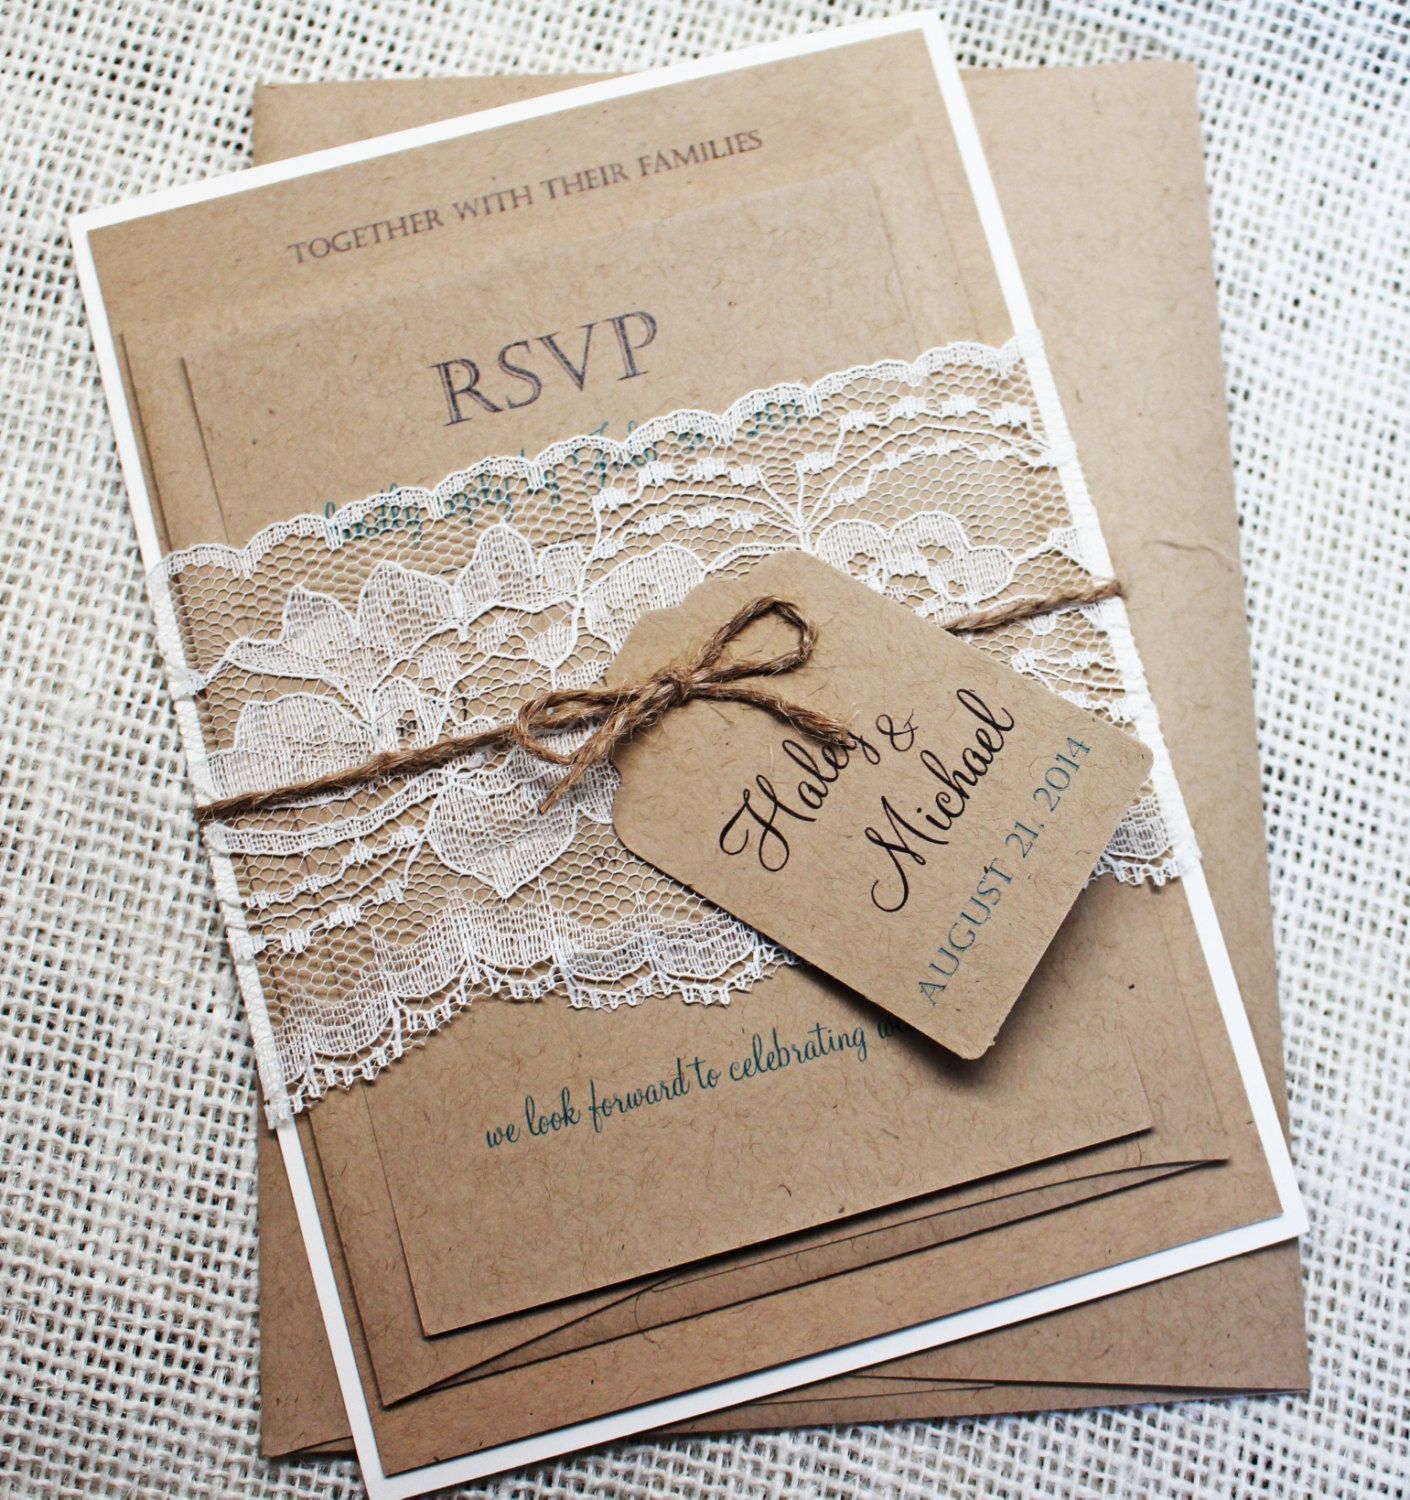 Rustic meets elegance these handmade invitations are a beautiful way